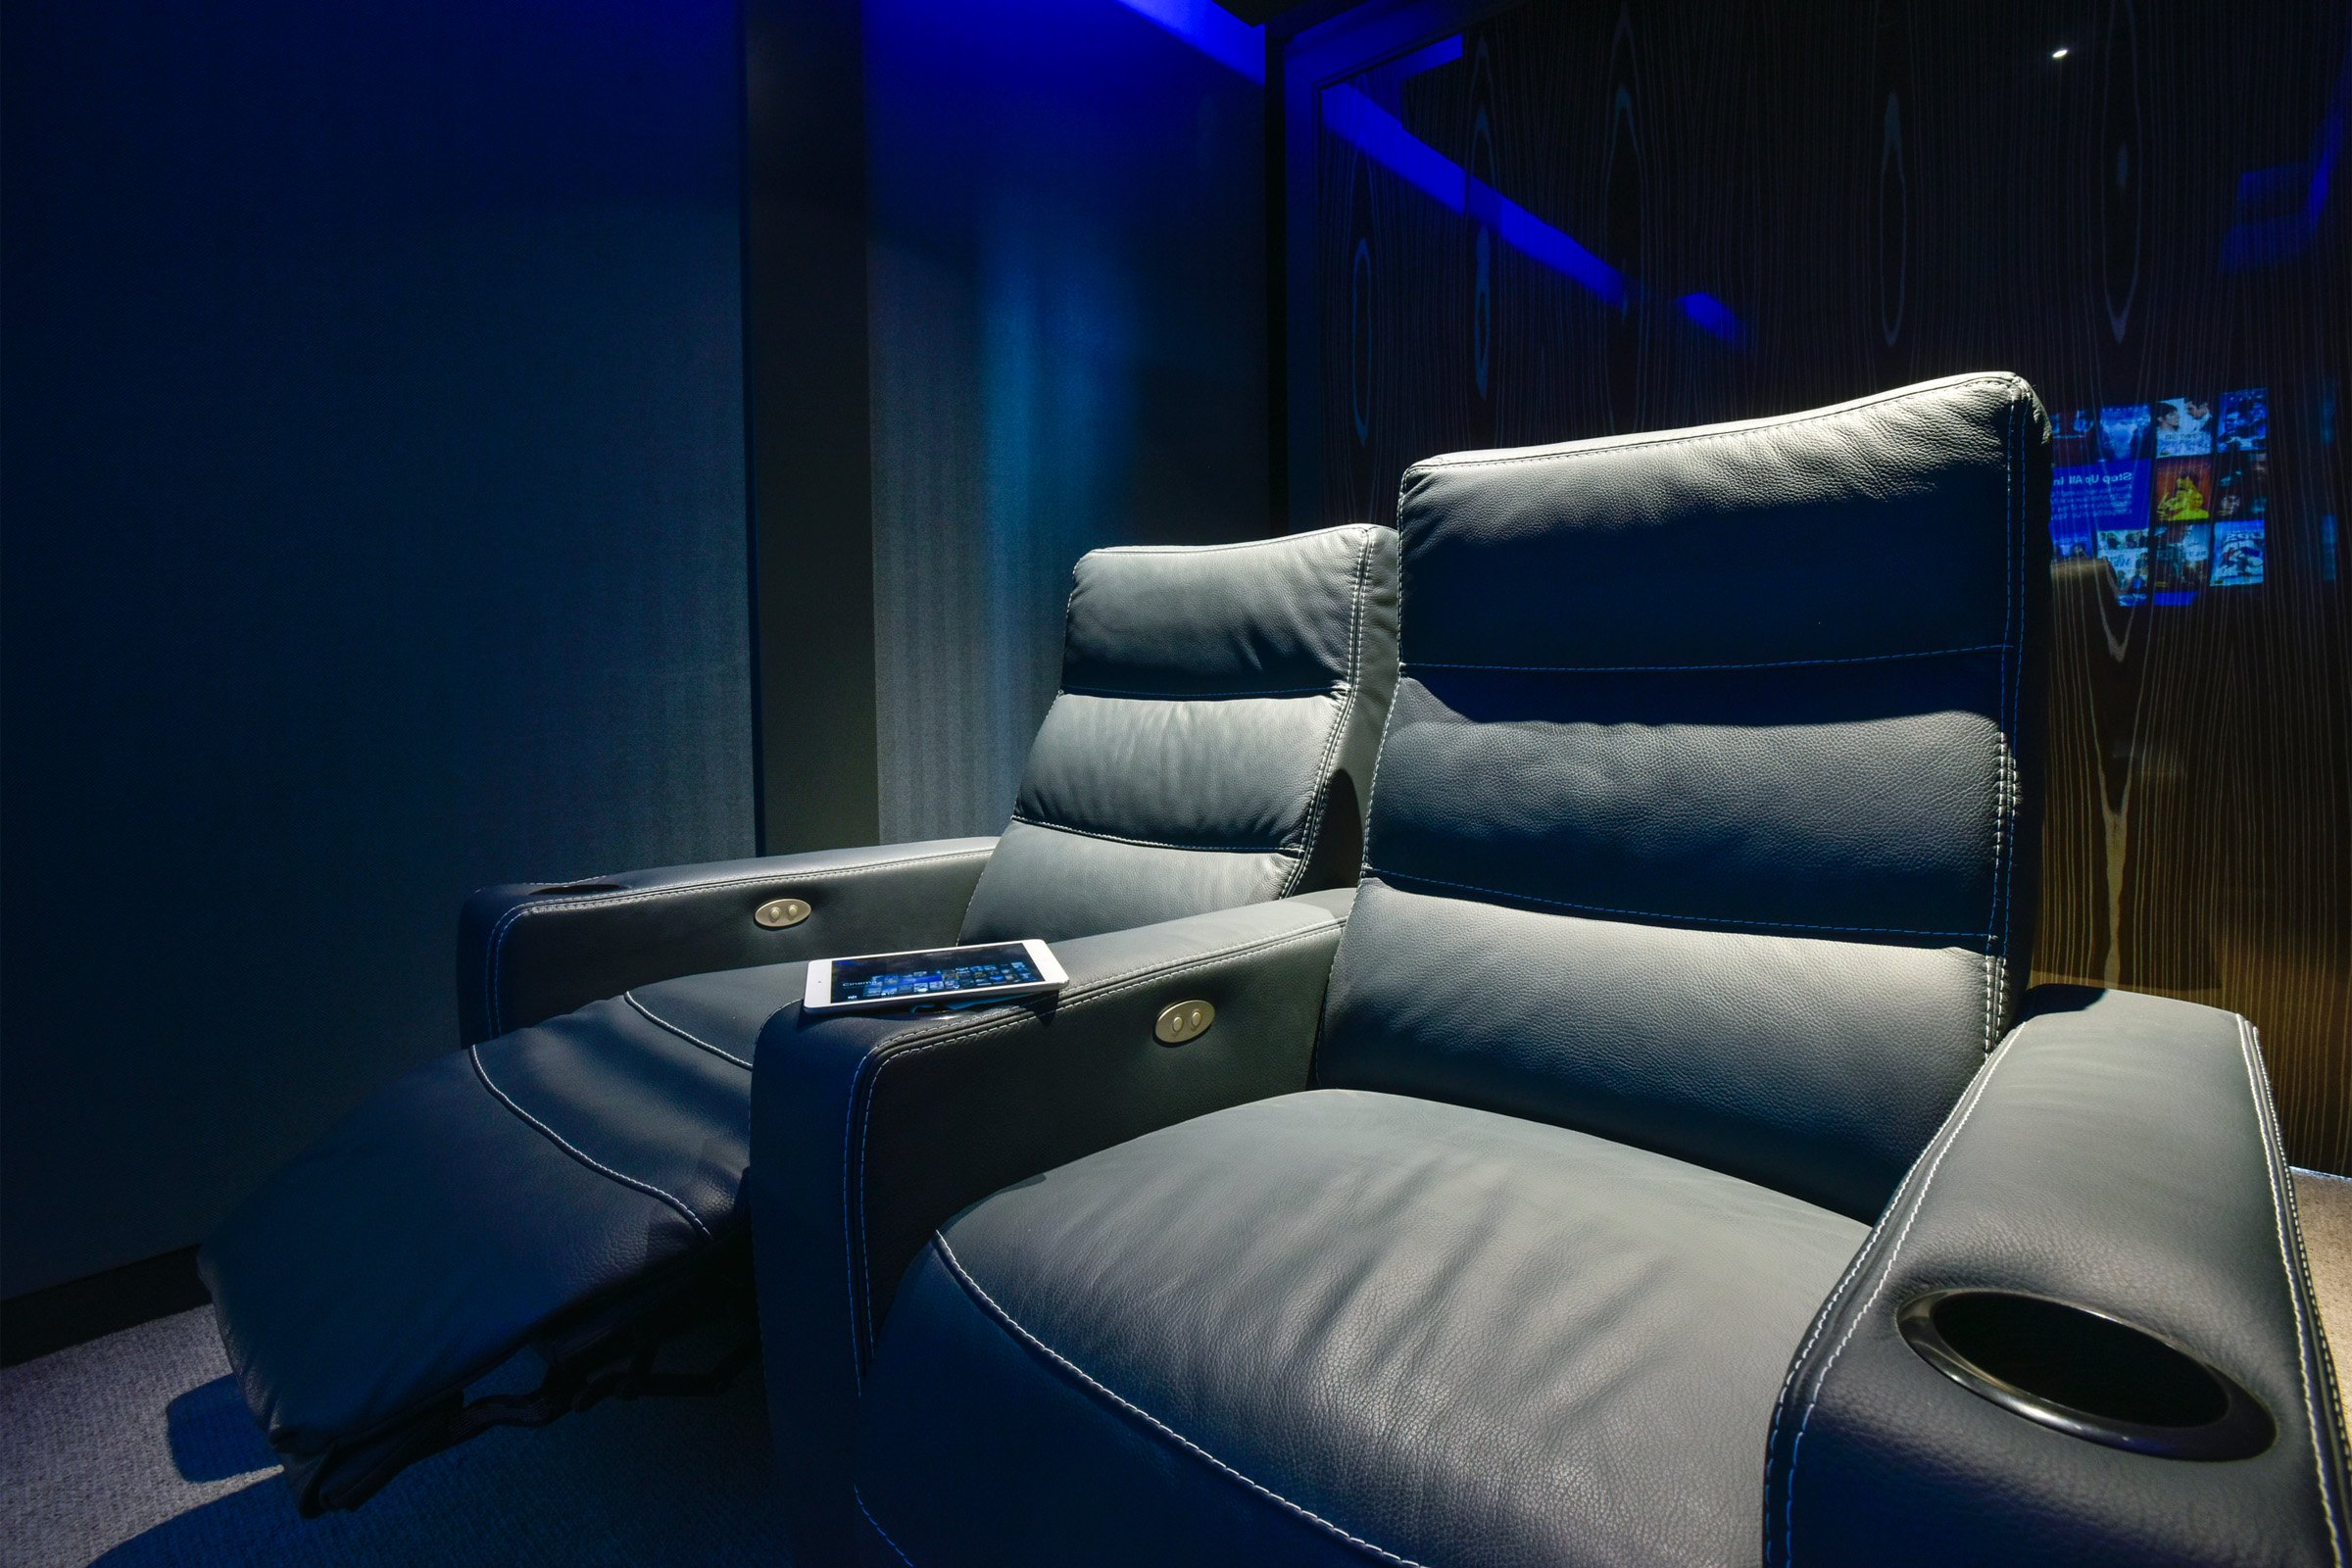 Luxury cinema seating controlled by Savant automation